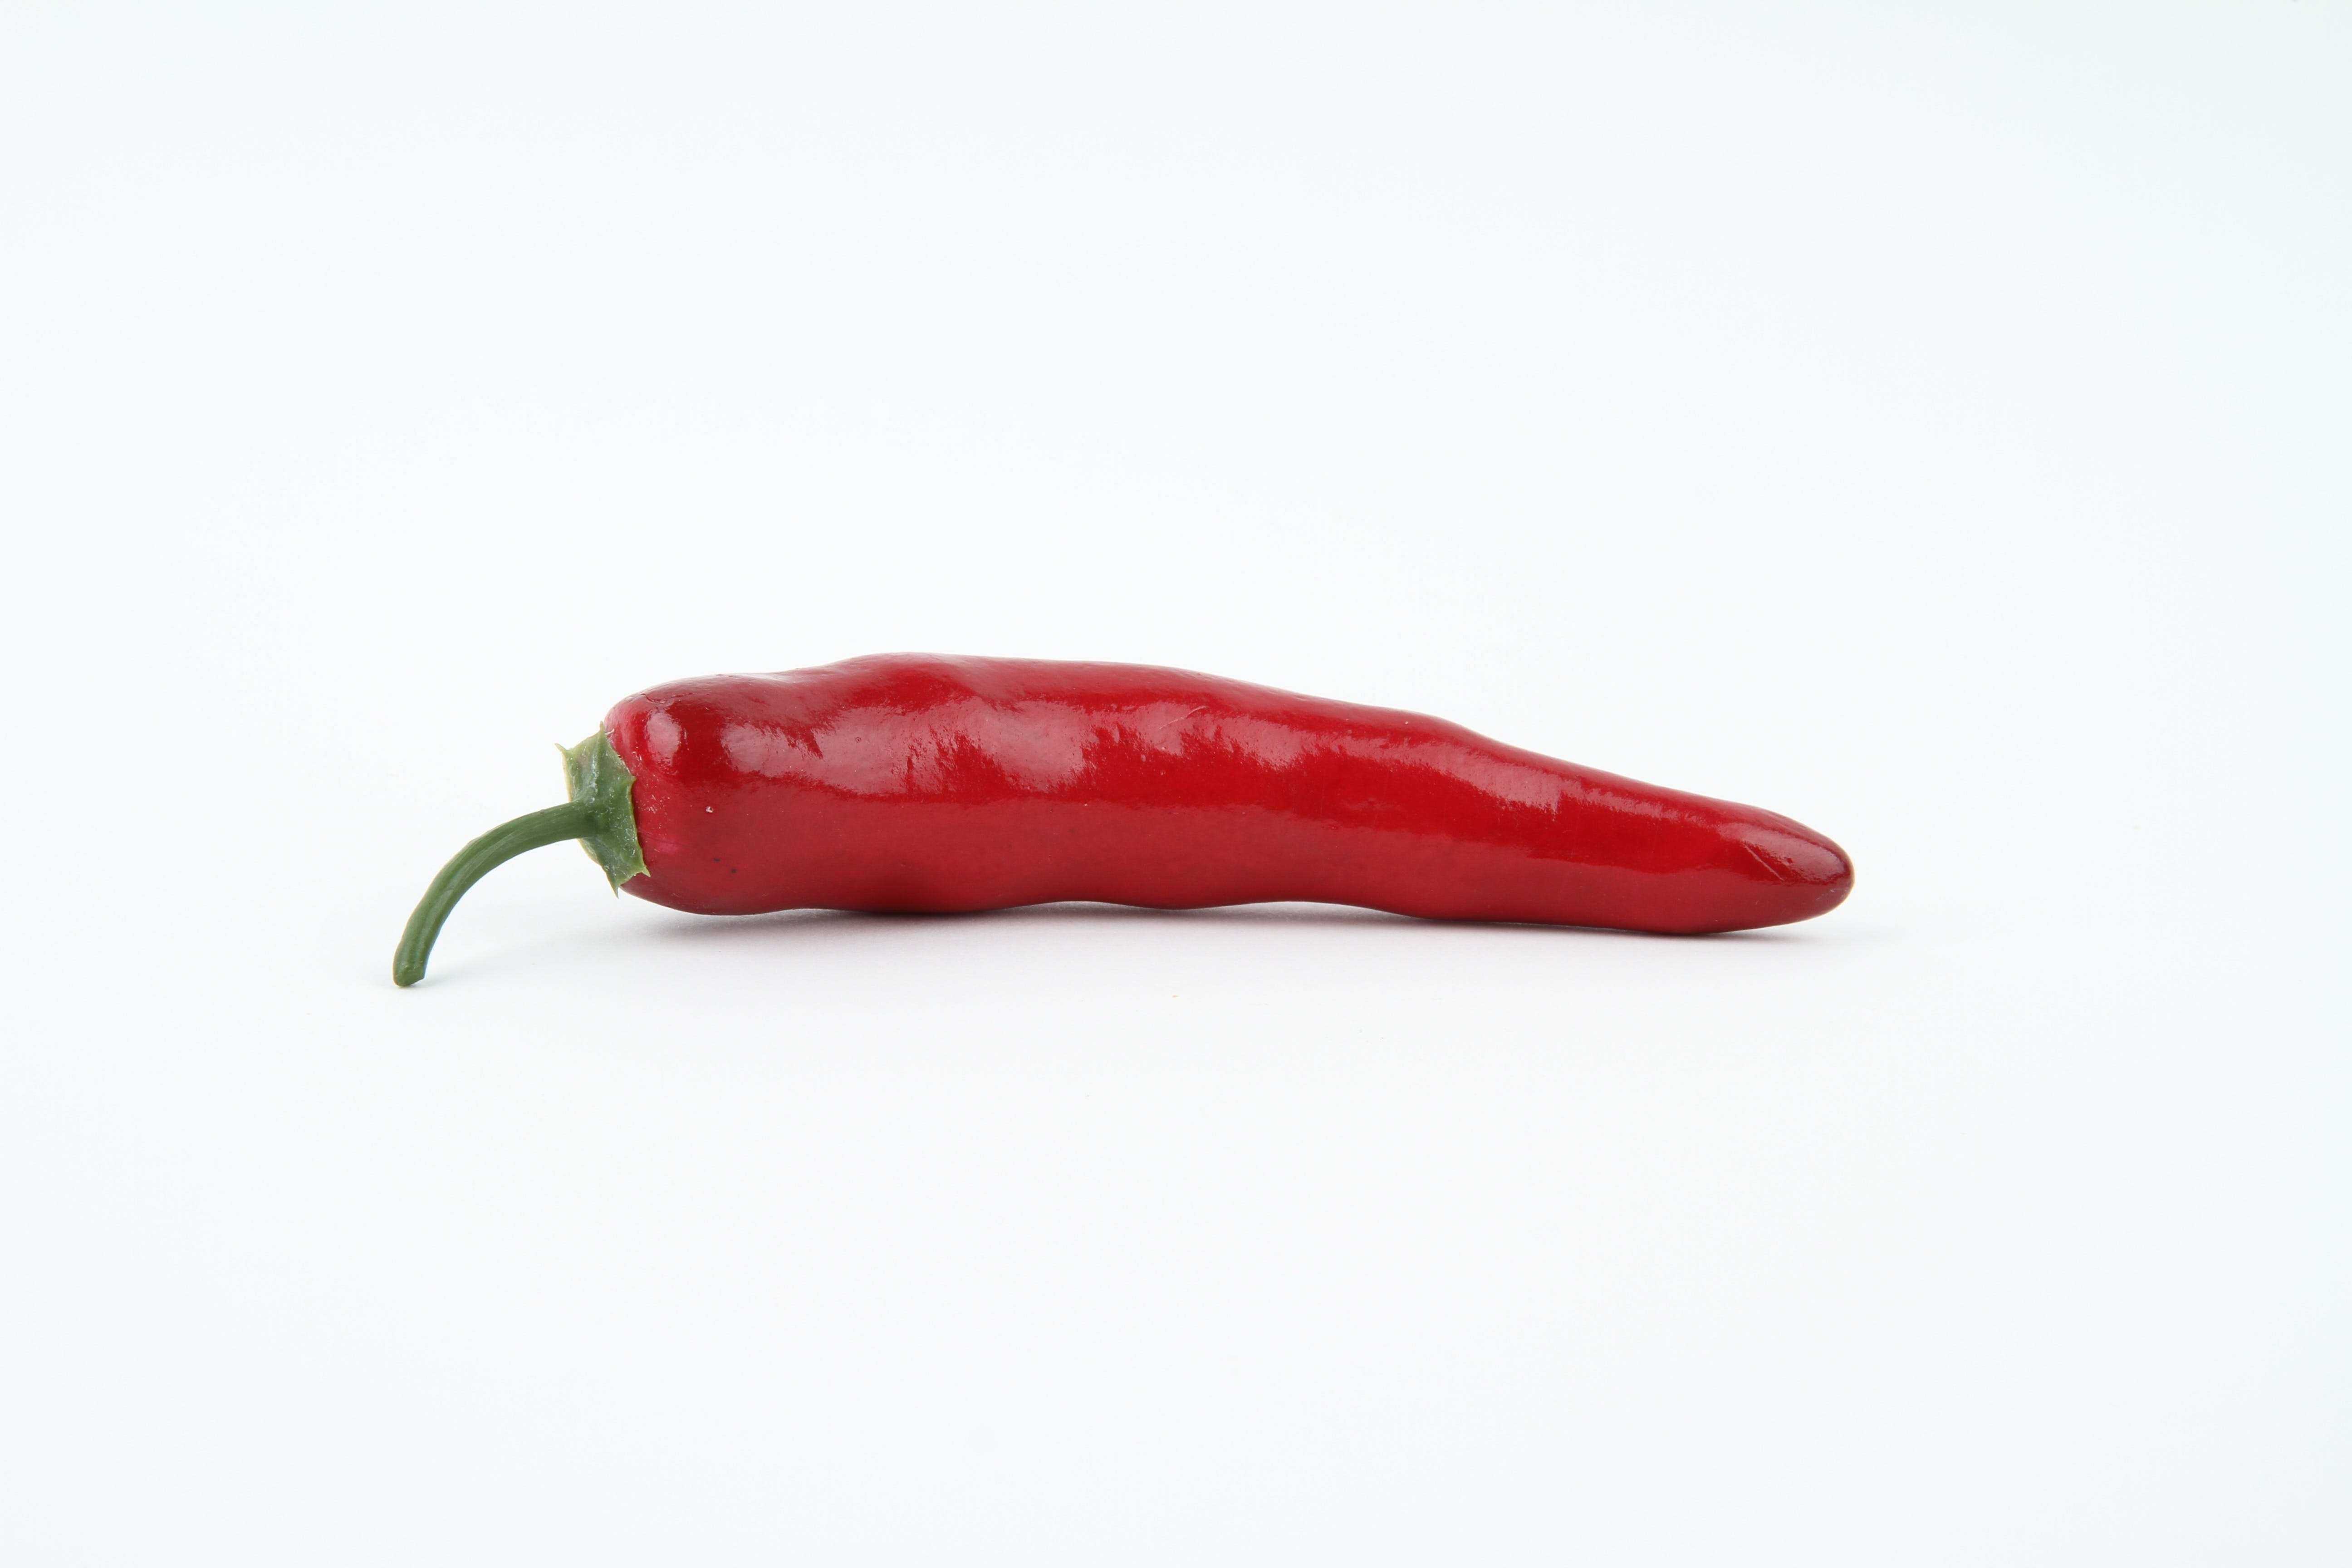 Red Long Chili